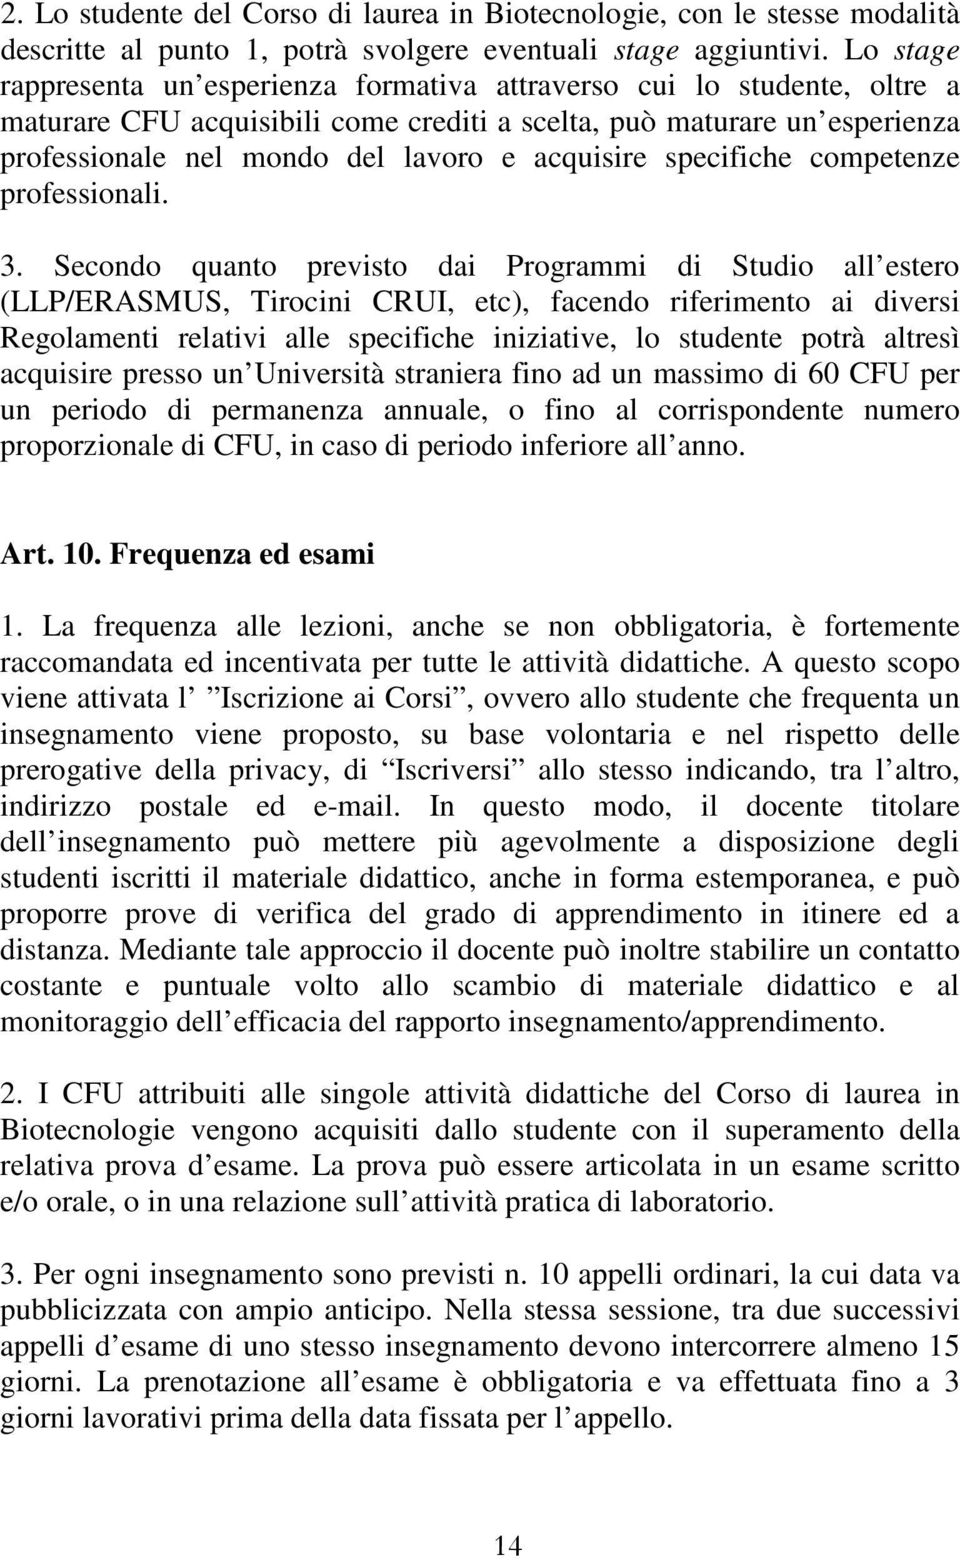 acquisire specifiche competenze professionali. 3.